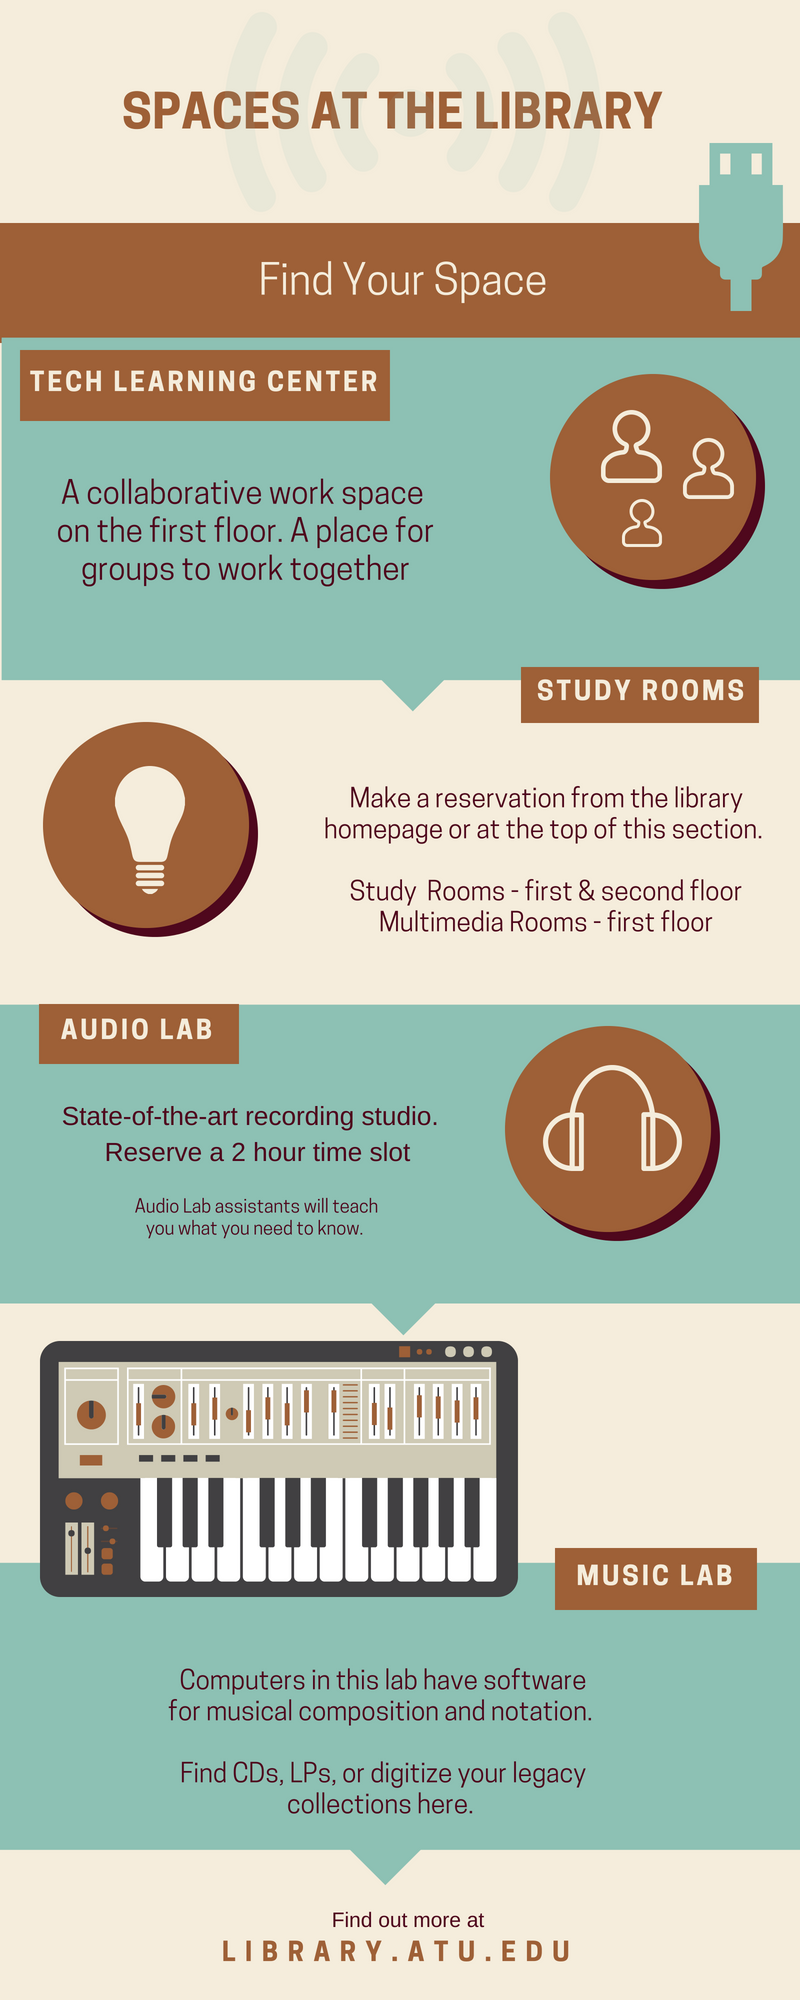 spaces at the library: tech learning center, study rooms, music lab, audio lab